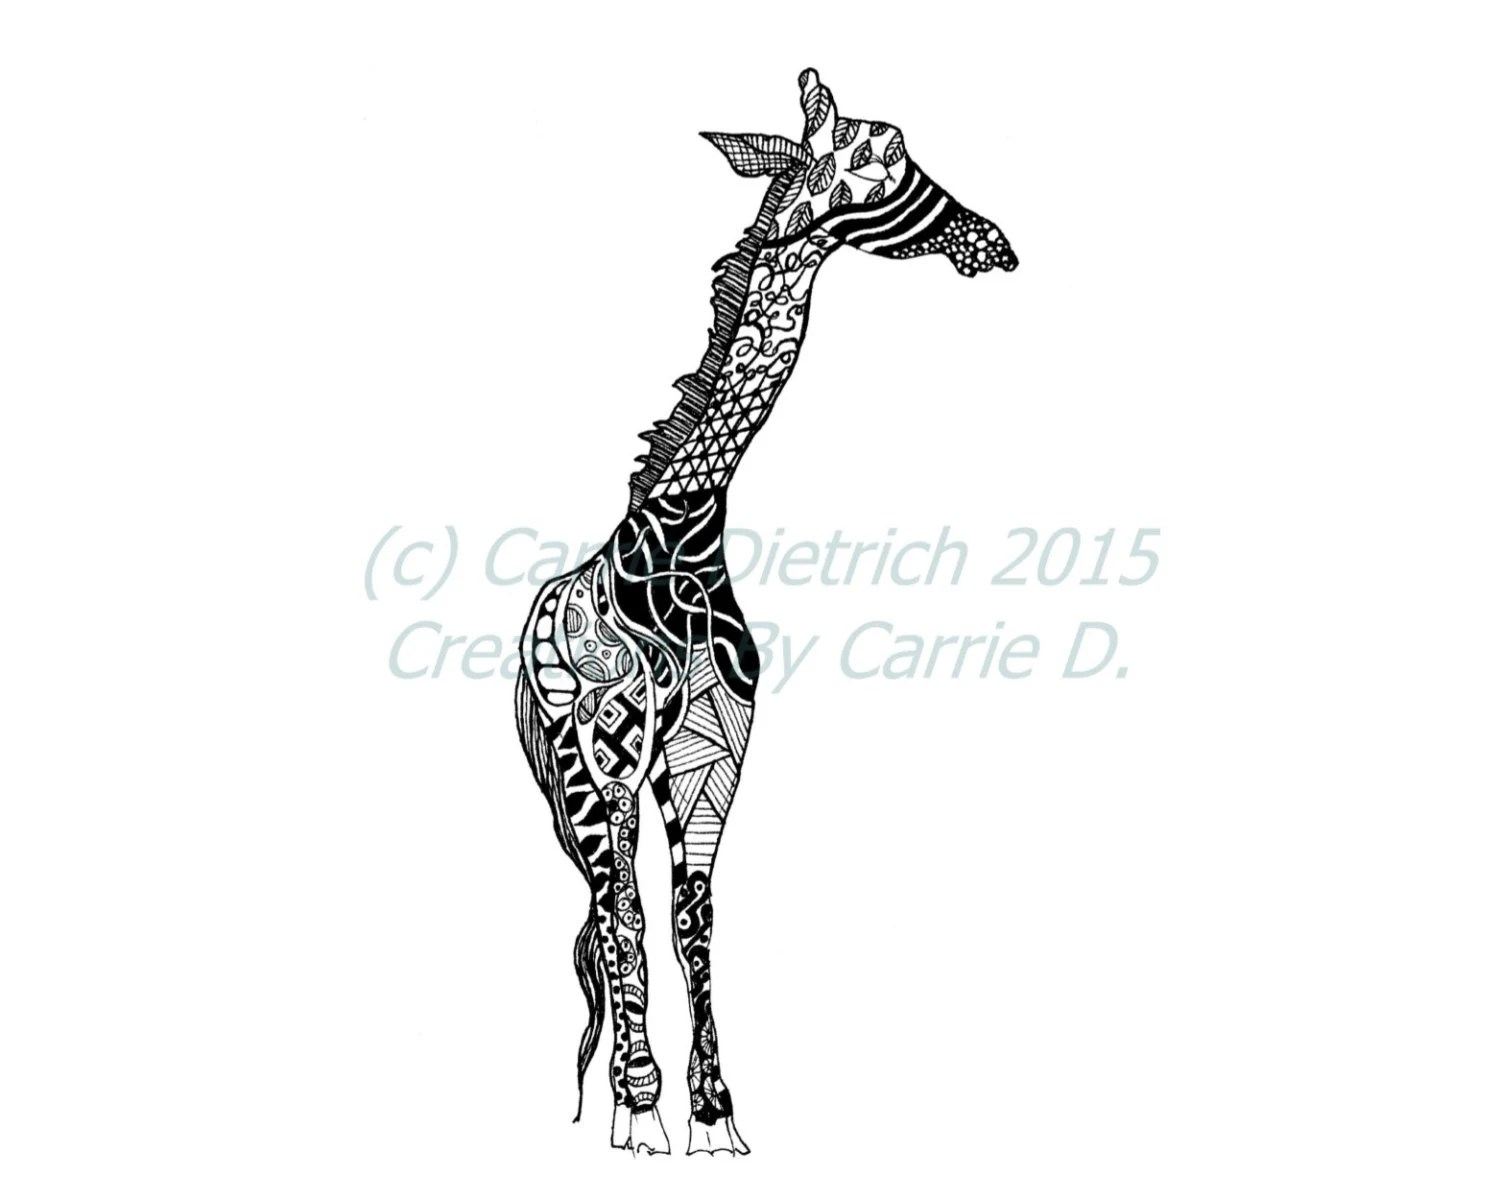 Giraffe Art Giraffe Drawing Pen and Ink Giraffe Black and